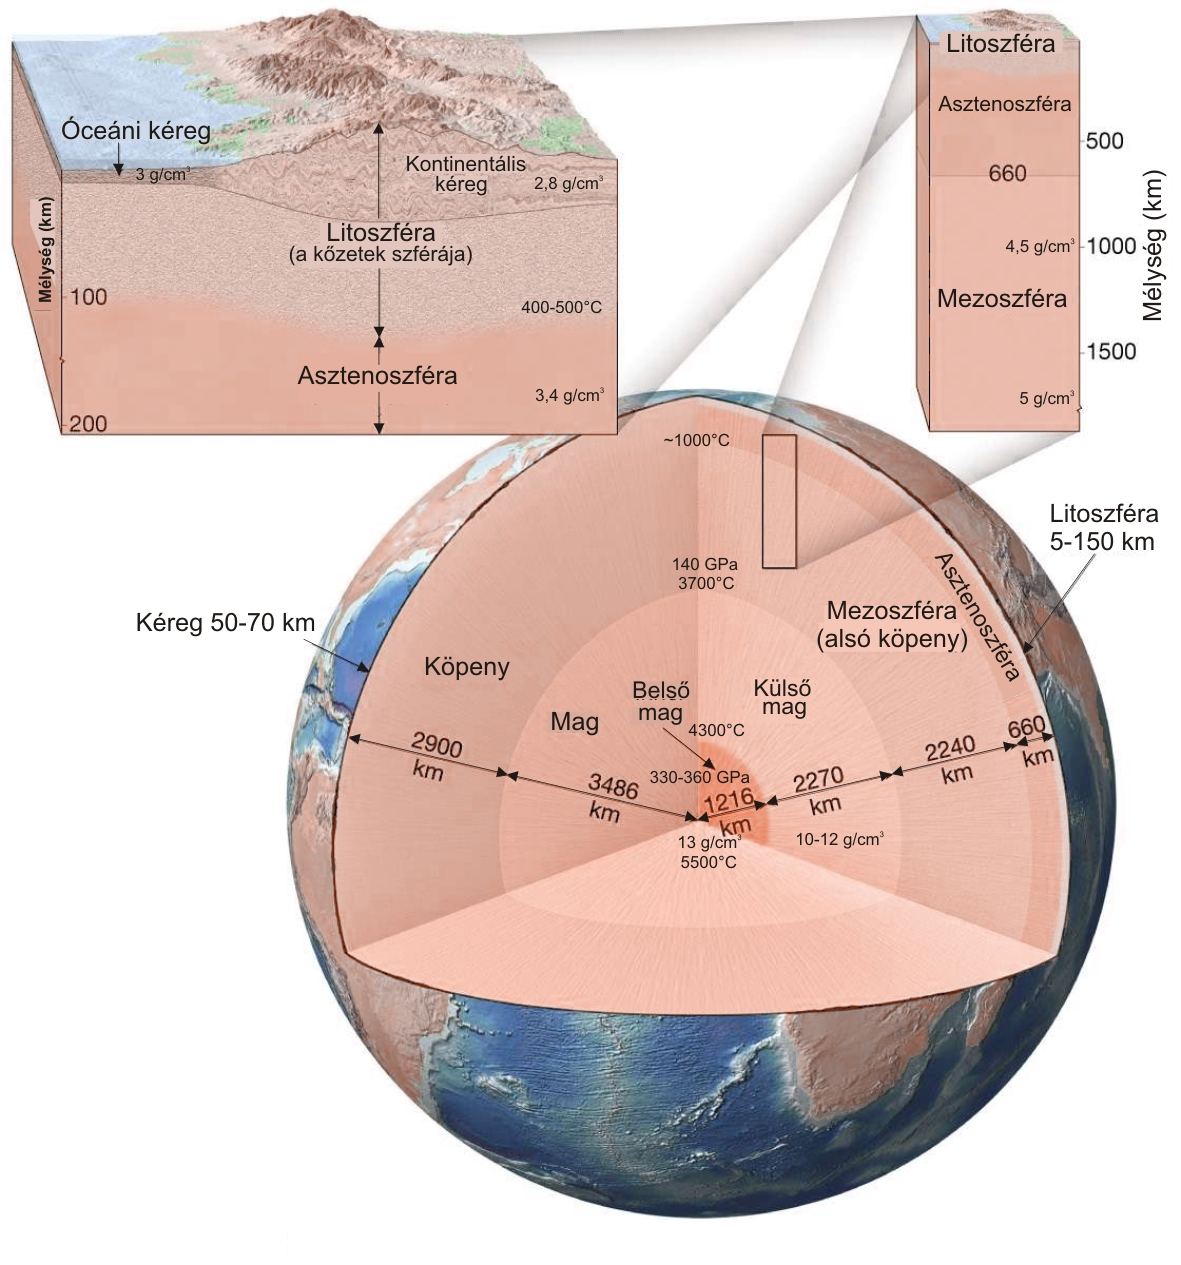 Internal stucture of the Earth